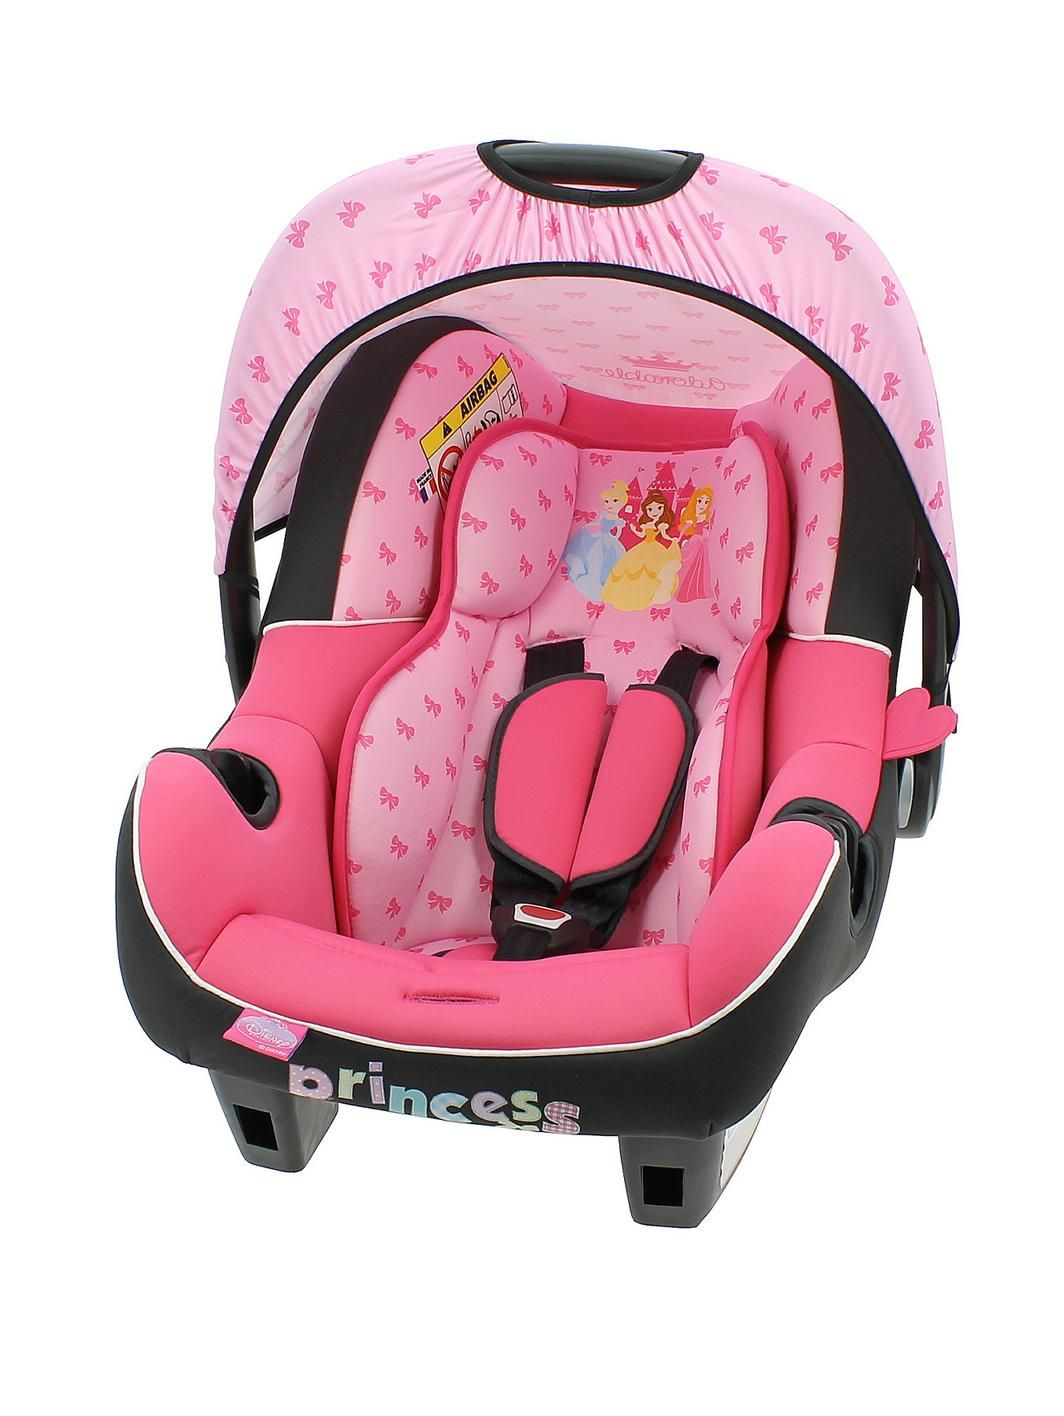 Womens Mens And Kids Fashion Furniture Electricals More